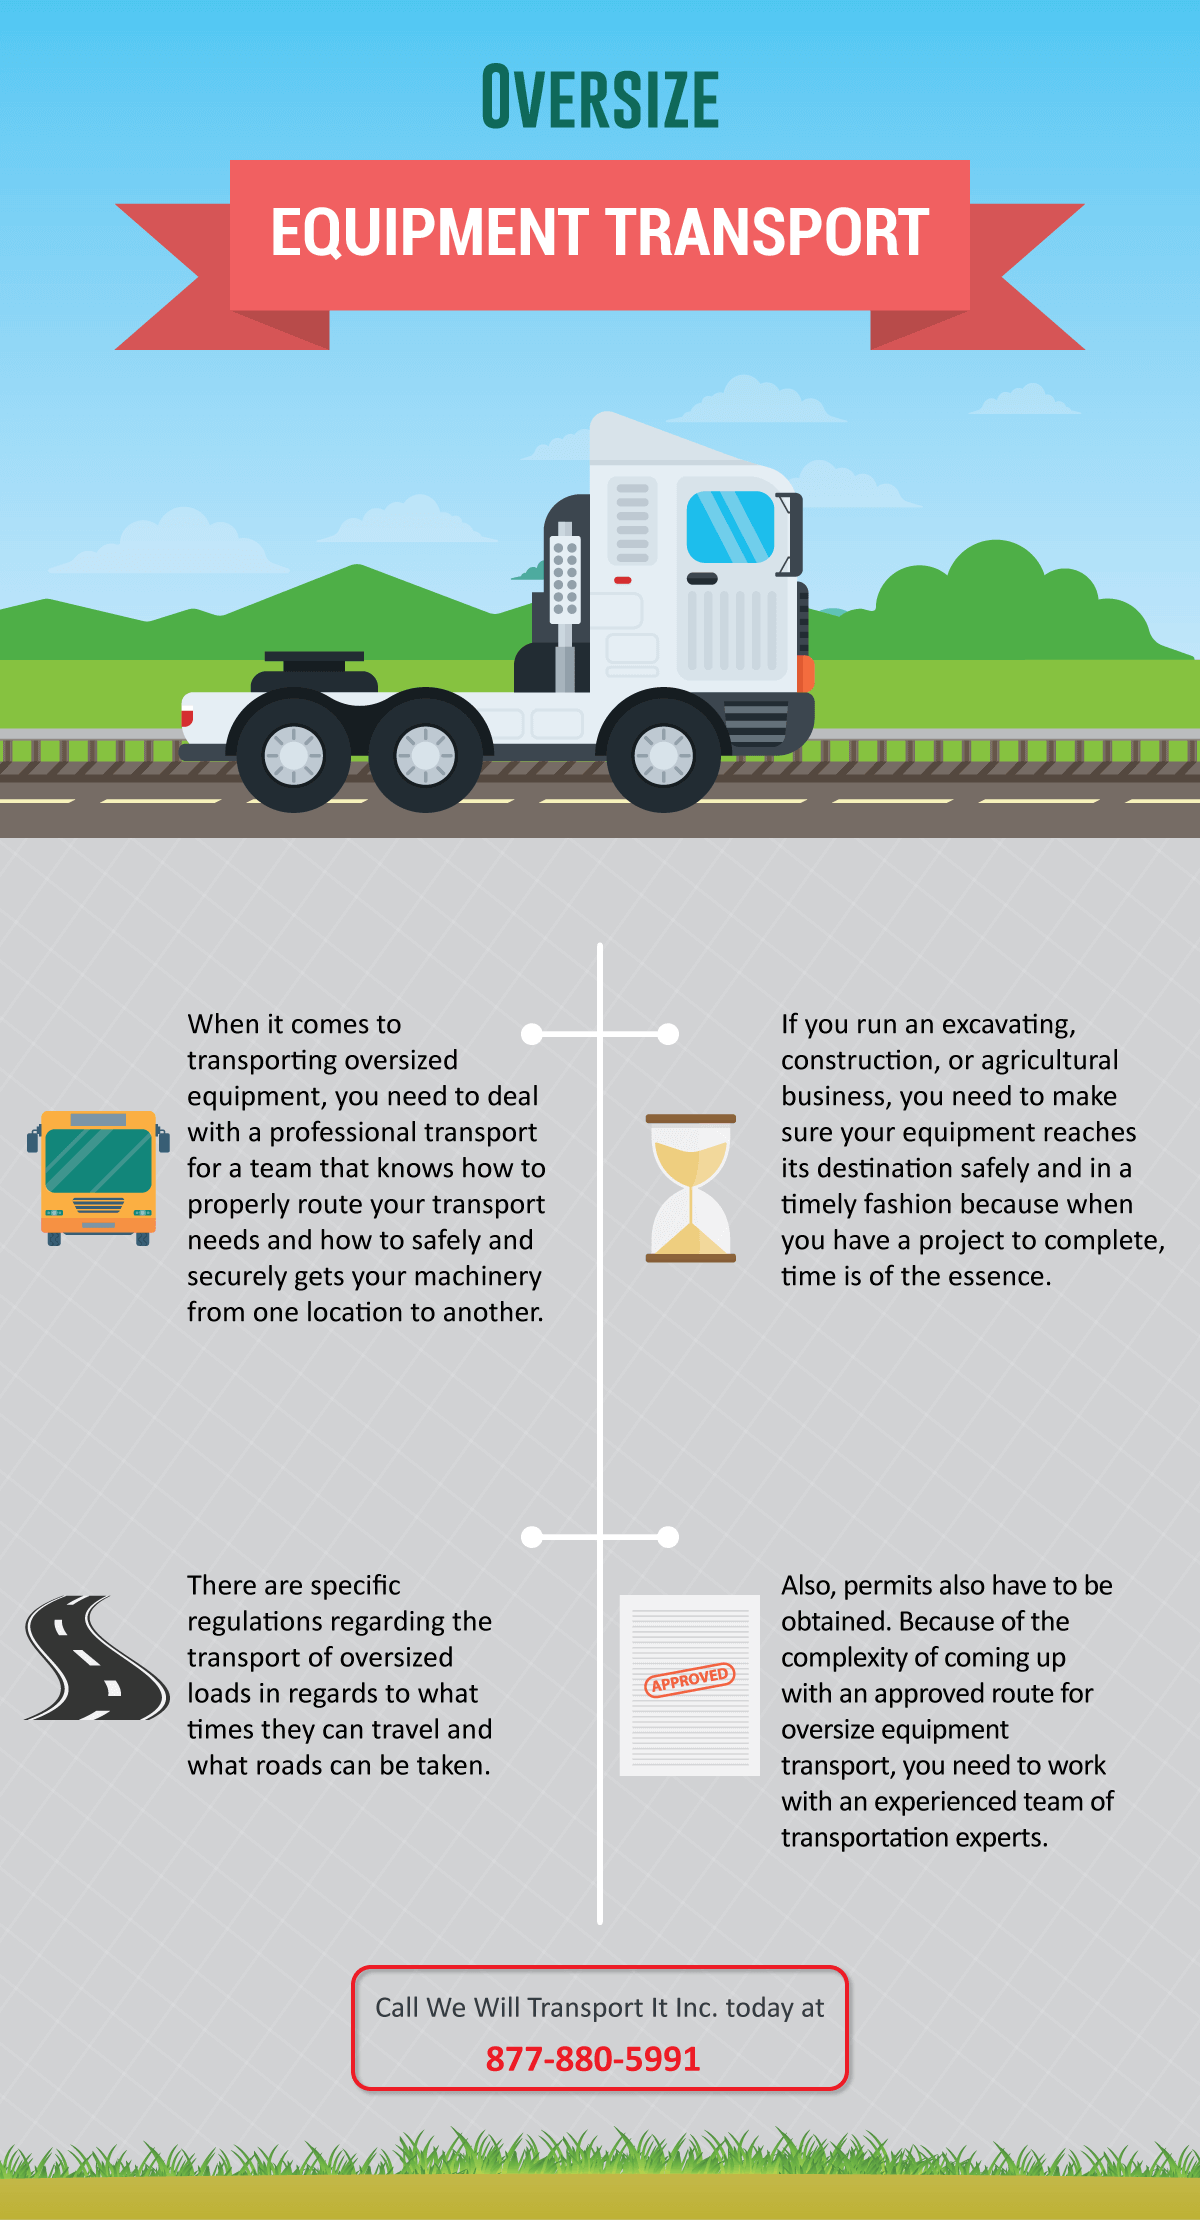 oversize equipment transport infographic